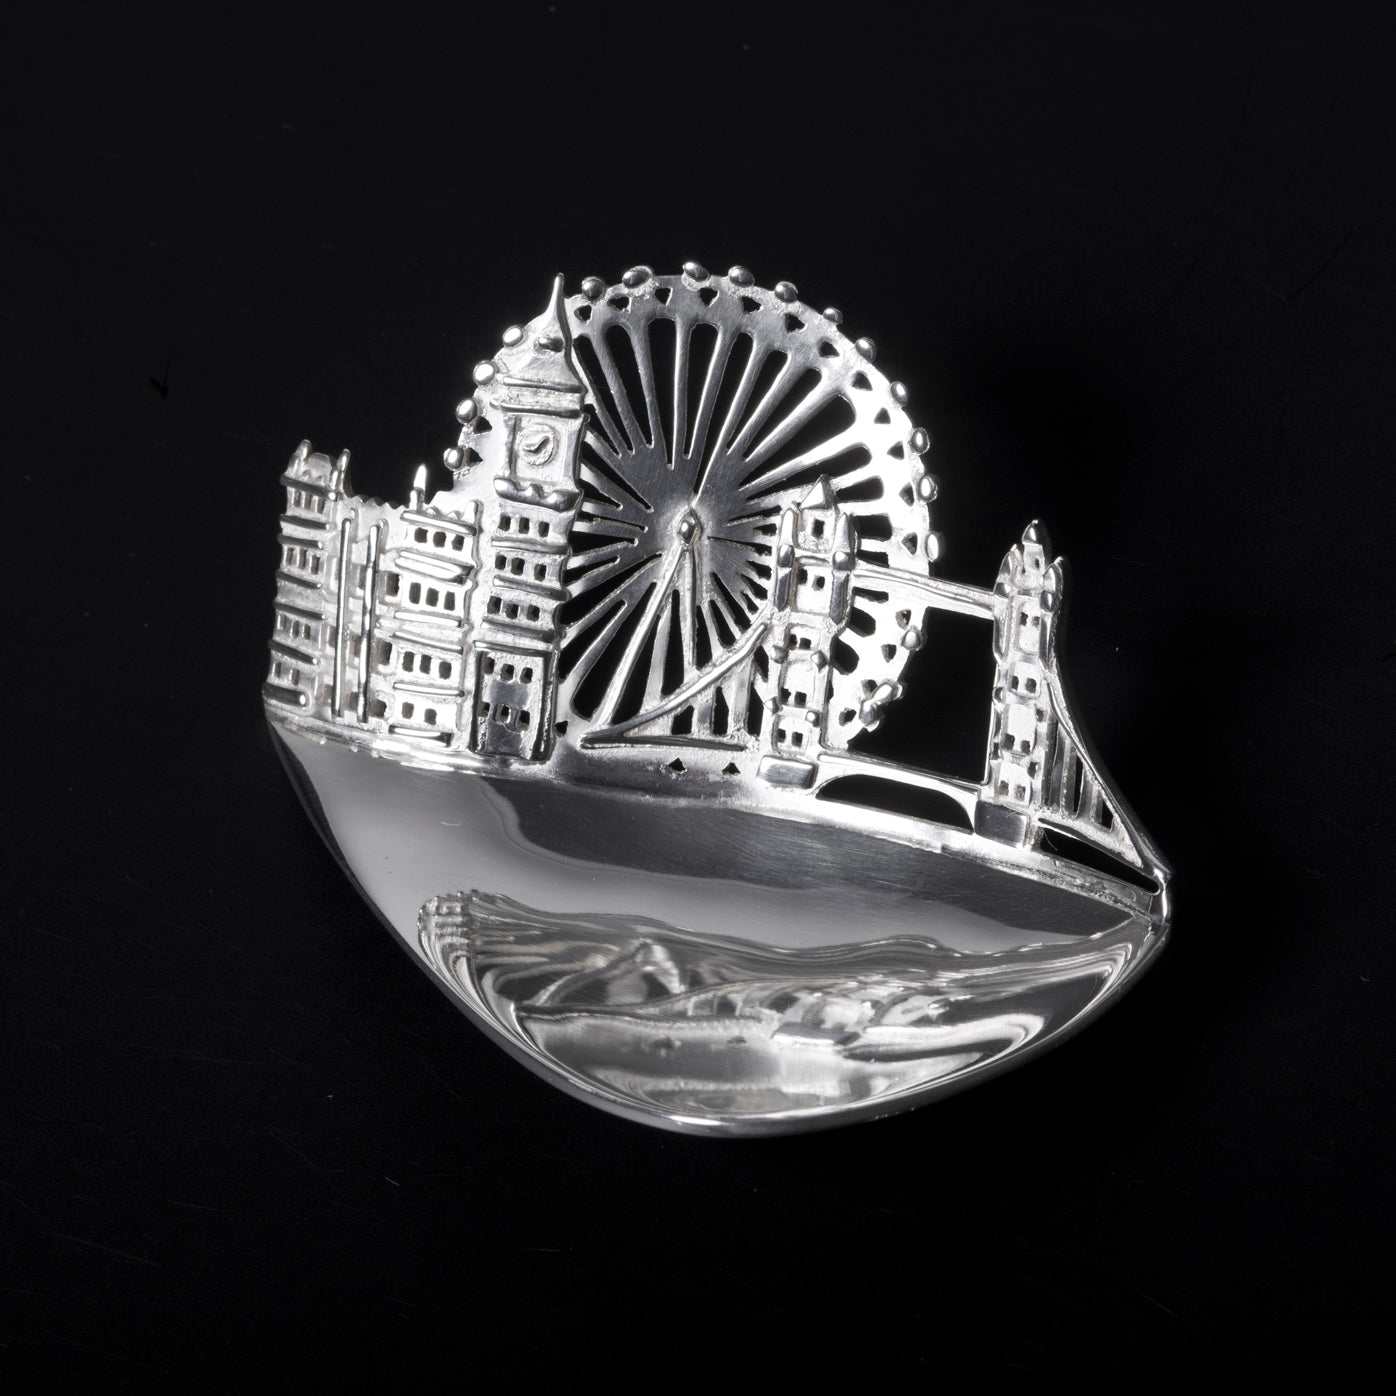 London Skyline Caddy Spoon